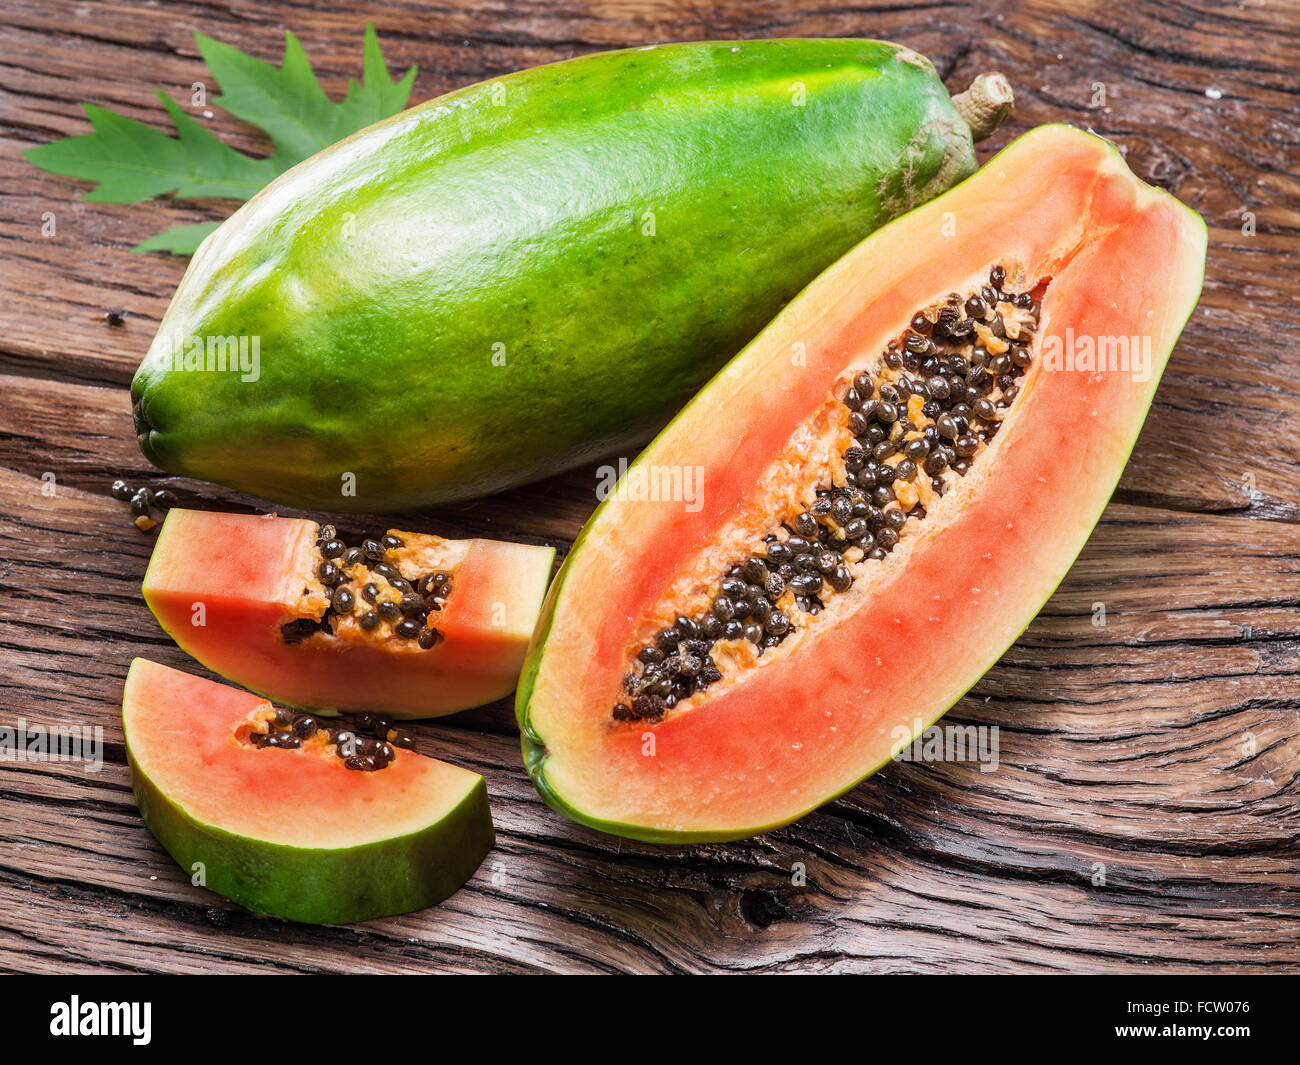 Papaya fruit on wooden background. - Stock Image